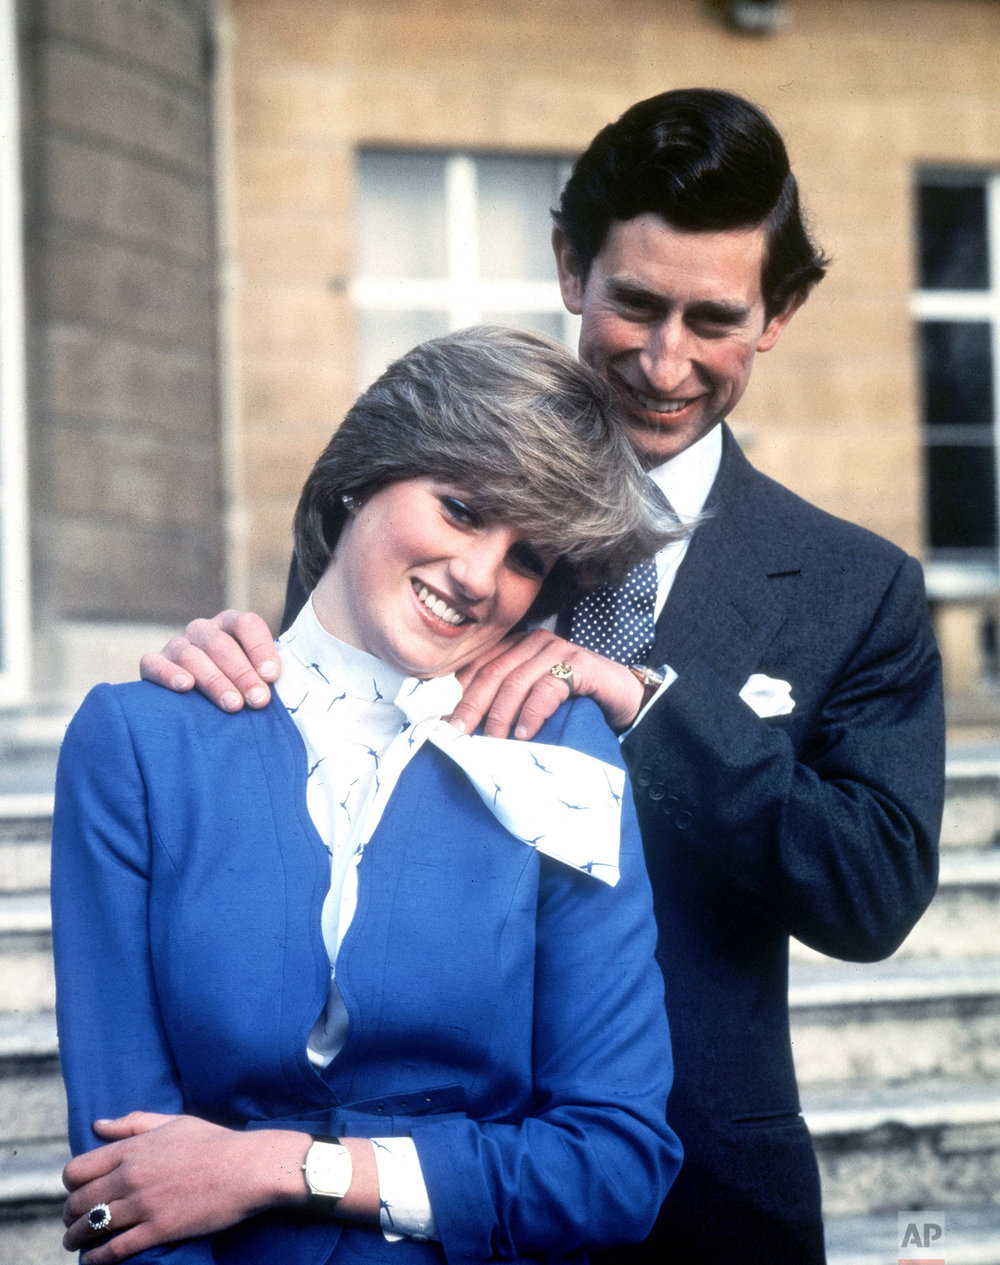 Prince Charles and Lady Diana Spencer in 1981